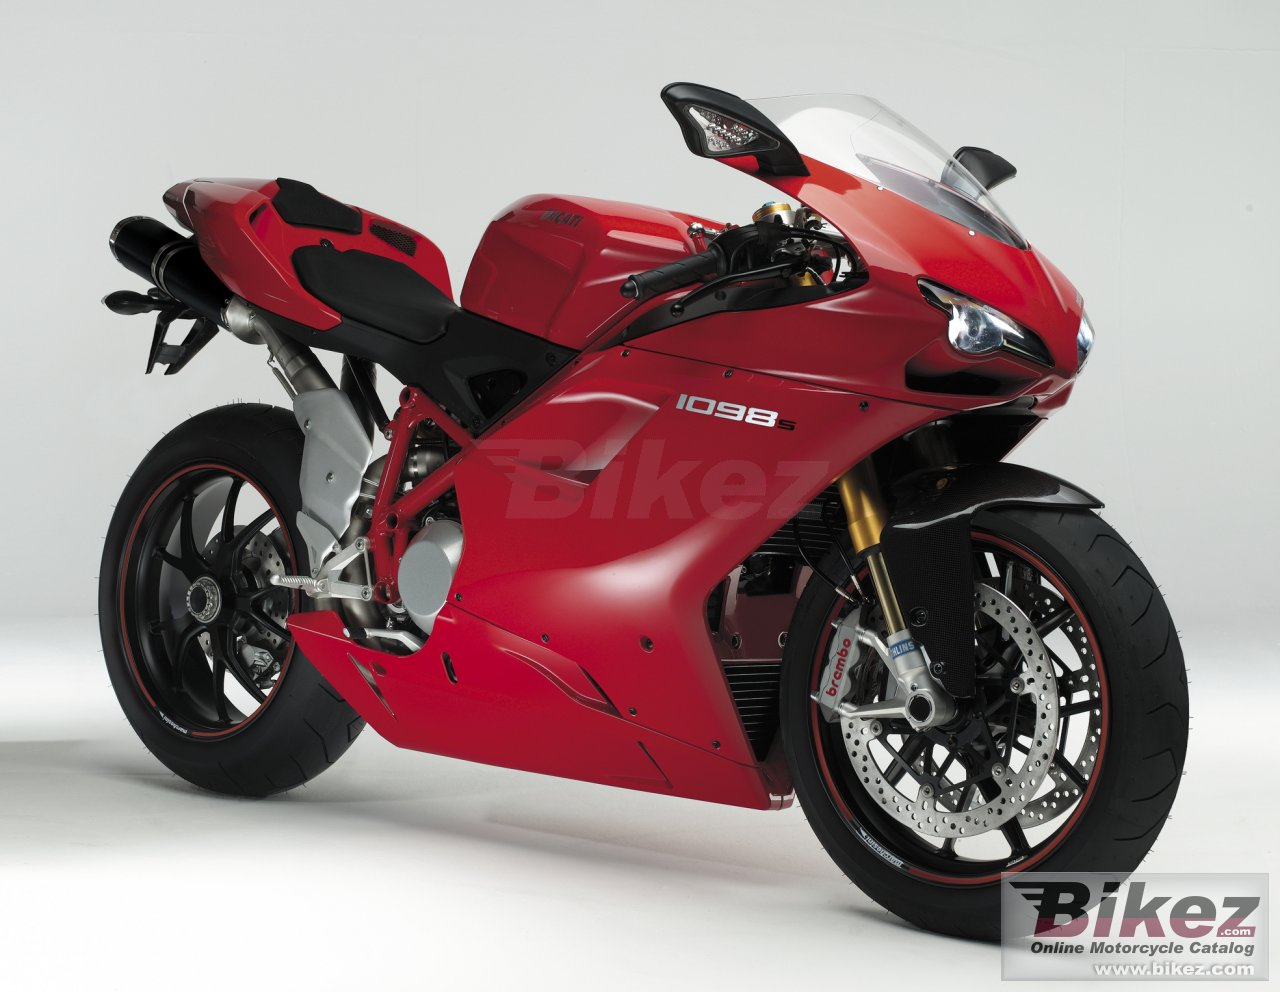 Big Ducati superbike 1098 s picture and wallpaper from Bikez.com